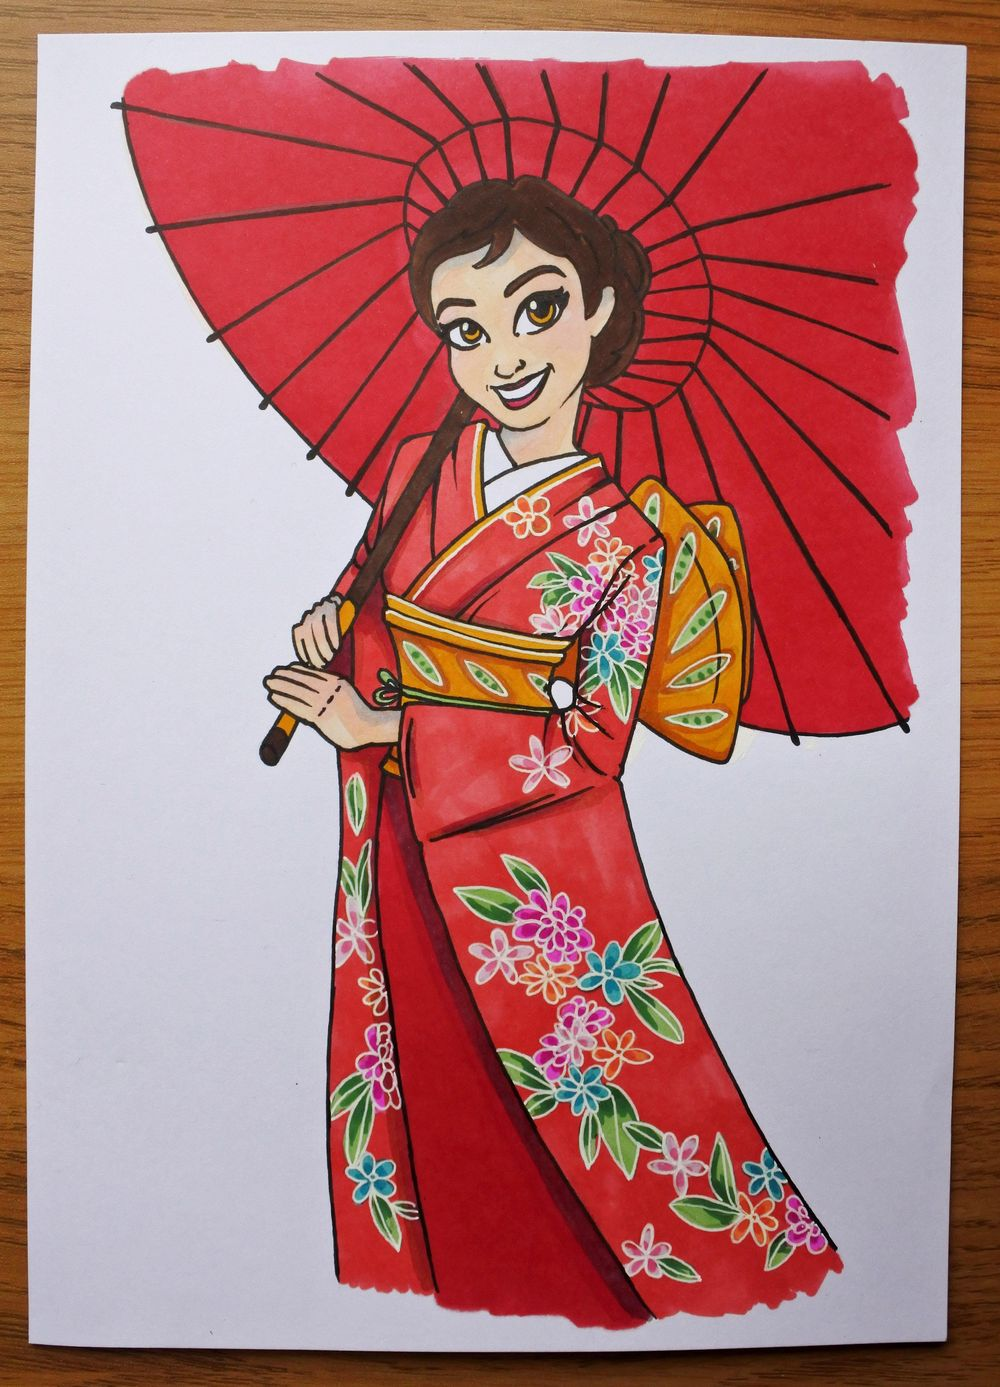 Carrie loves Japan - image 4 - student project